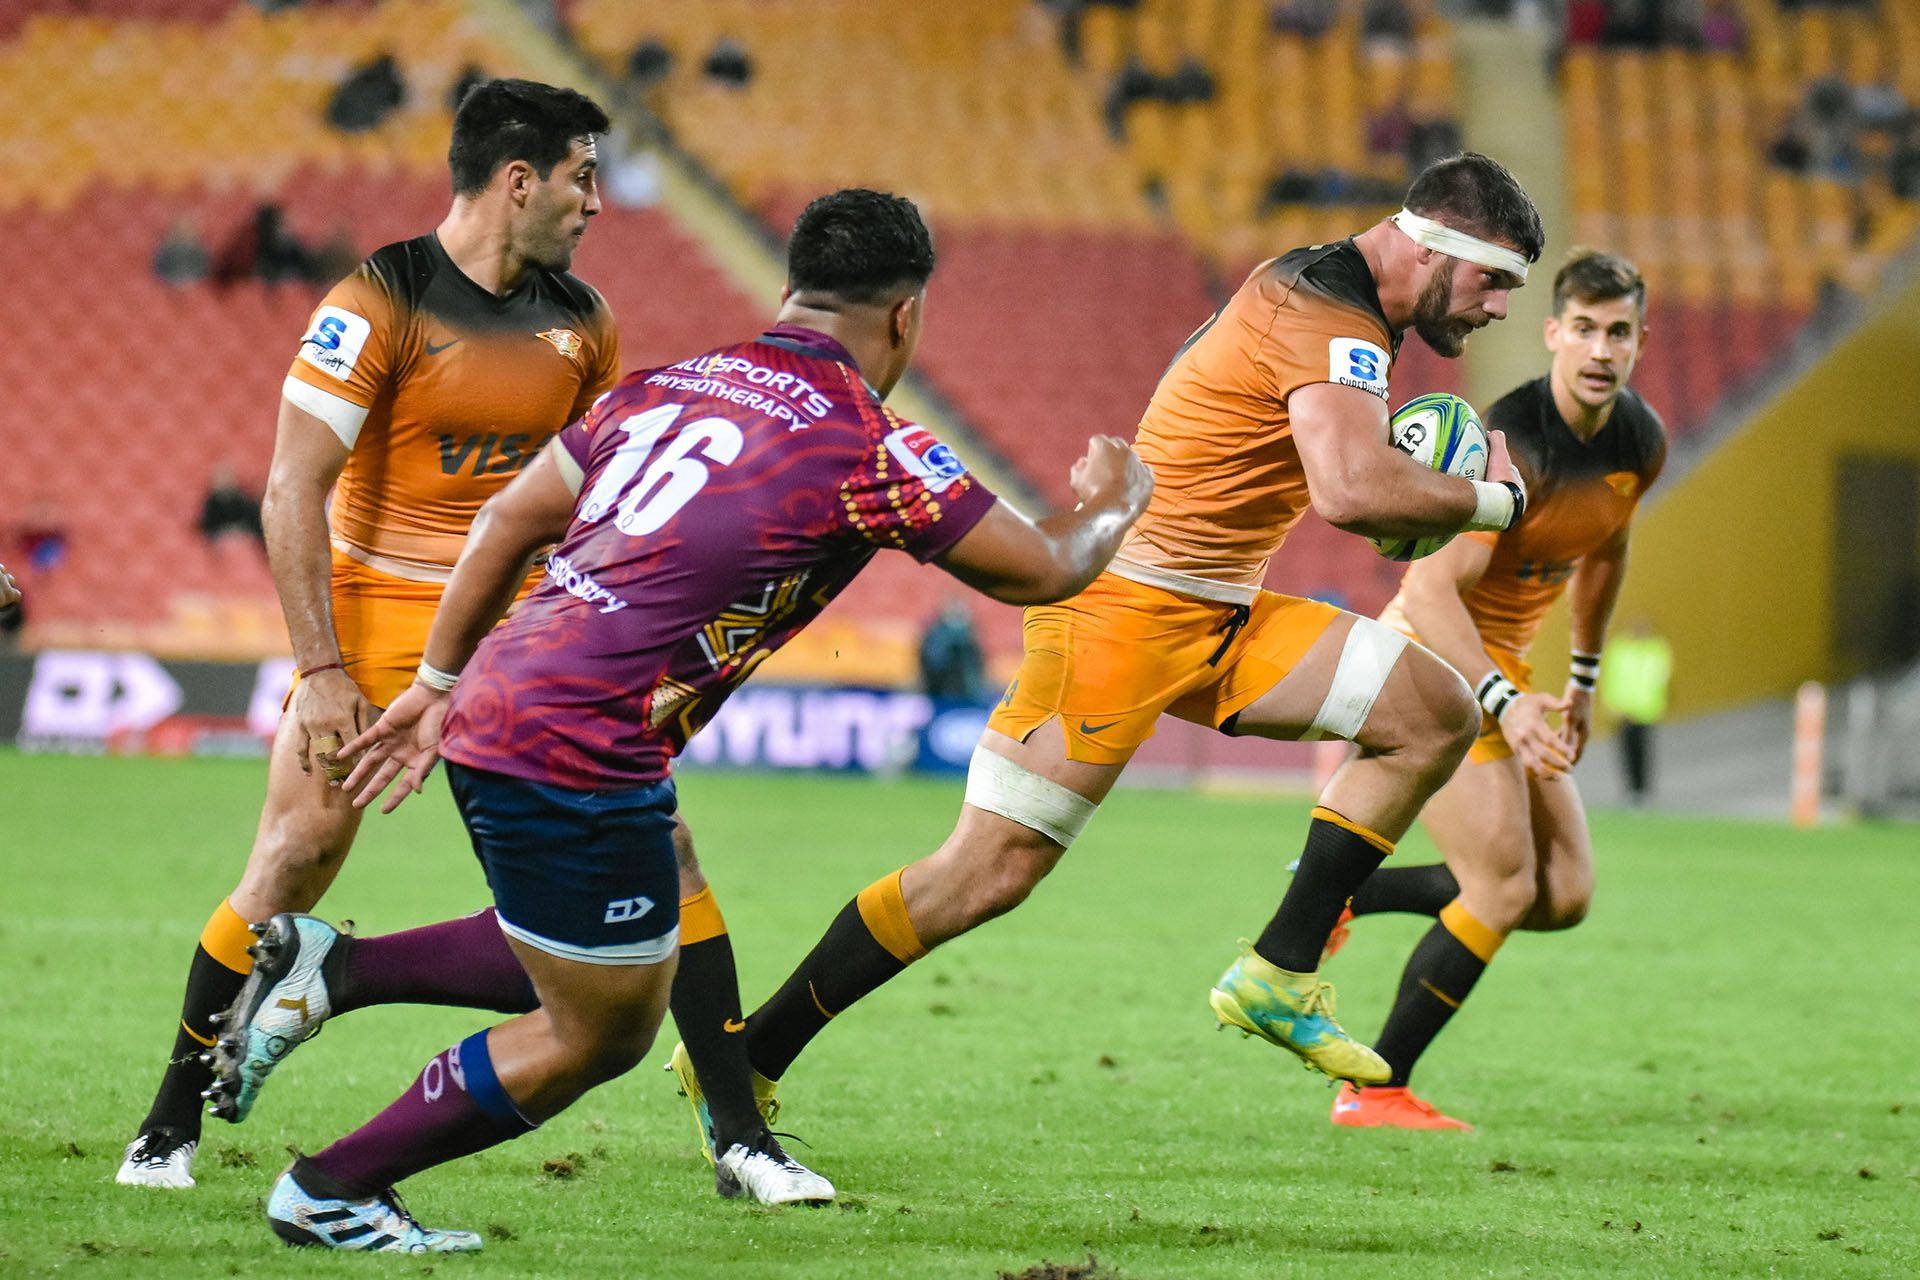 during the Super Rugby Round 16 match between Queensland Reds and the the Jaguares at Suncorp Stadium on June 1, 2019 in Brisbane, Queensland, Australia. (Photo by Stephen Tremain) (@jaguaresarg)